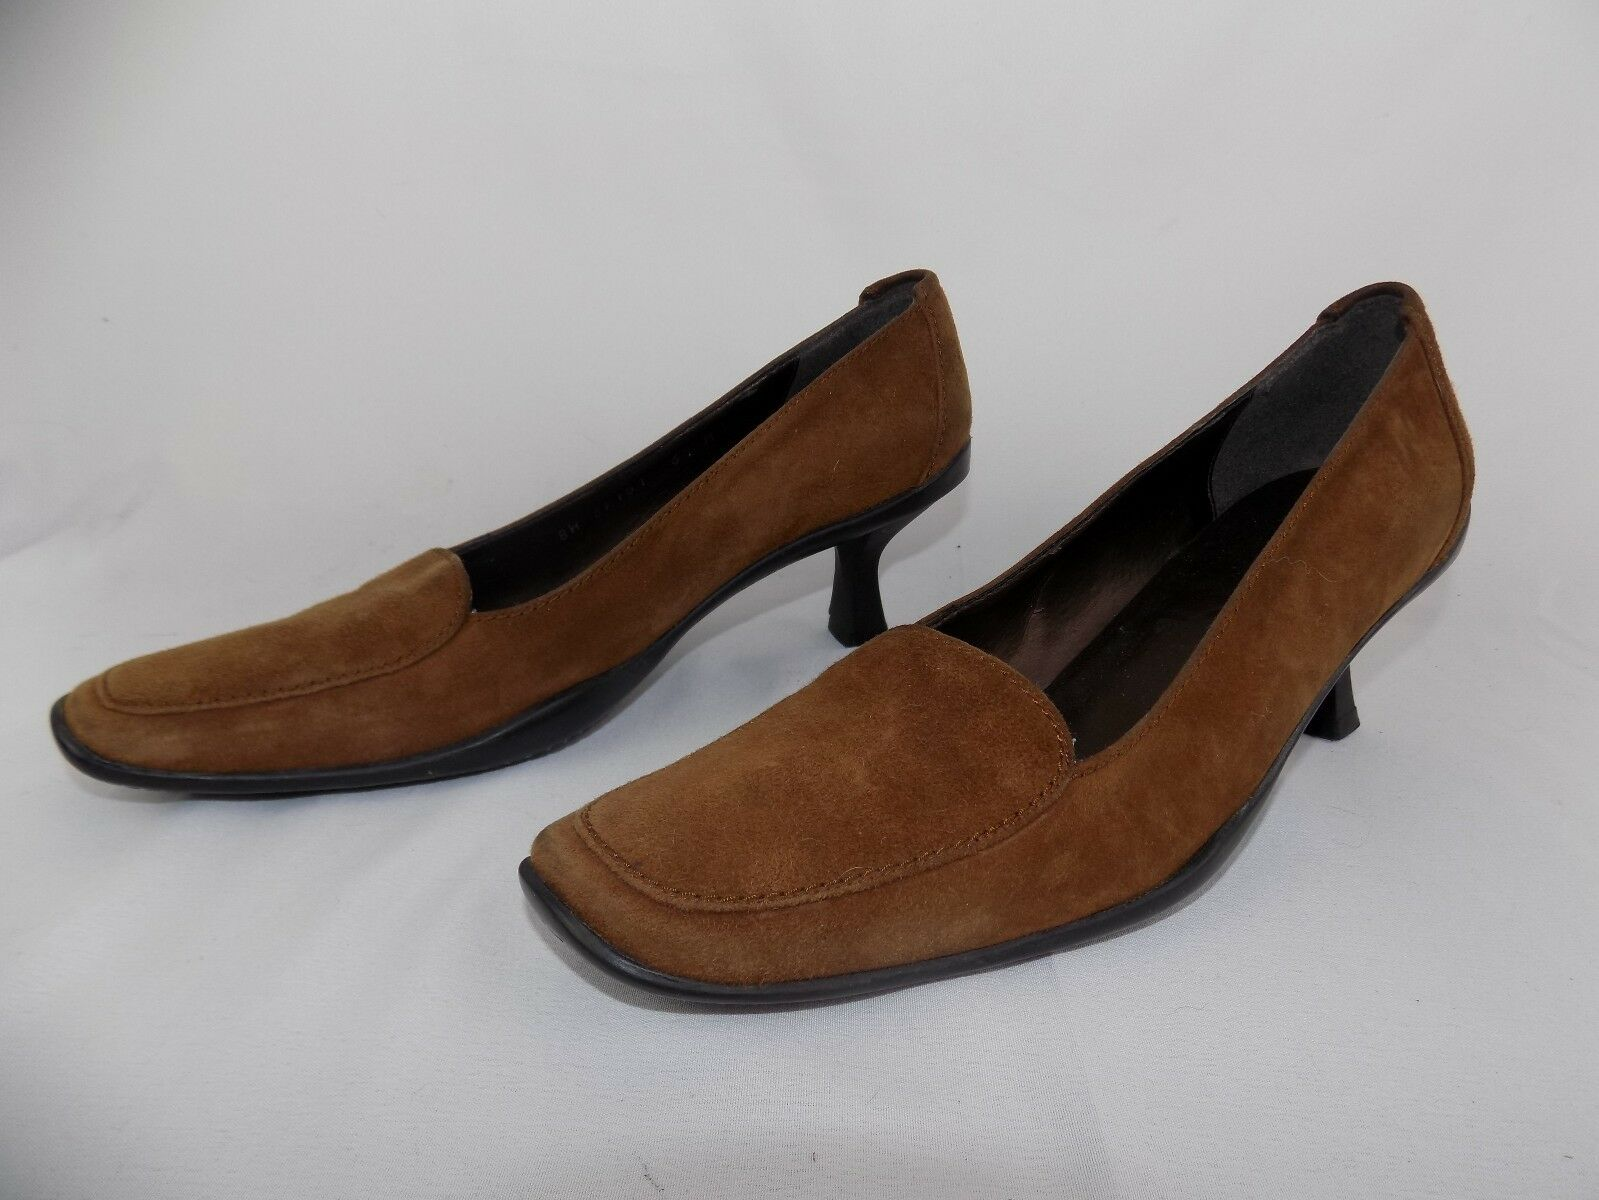 STUART WEITZMAN HEELS SIZE 6.5 M BROWN SUEDE LEATHER SHOES